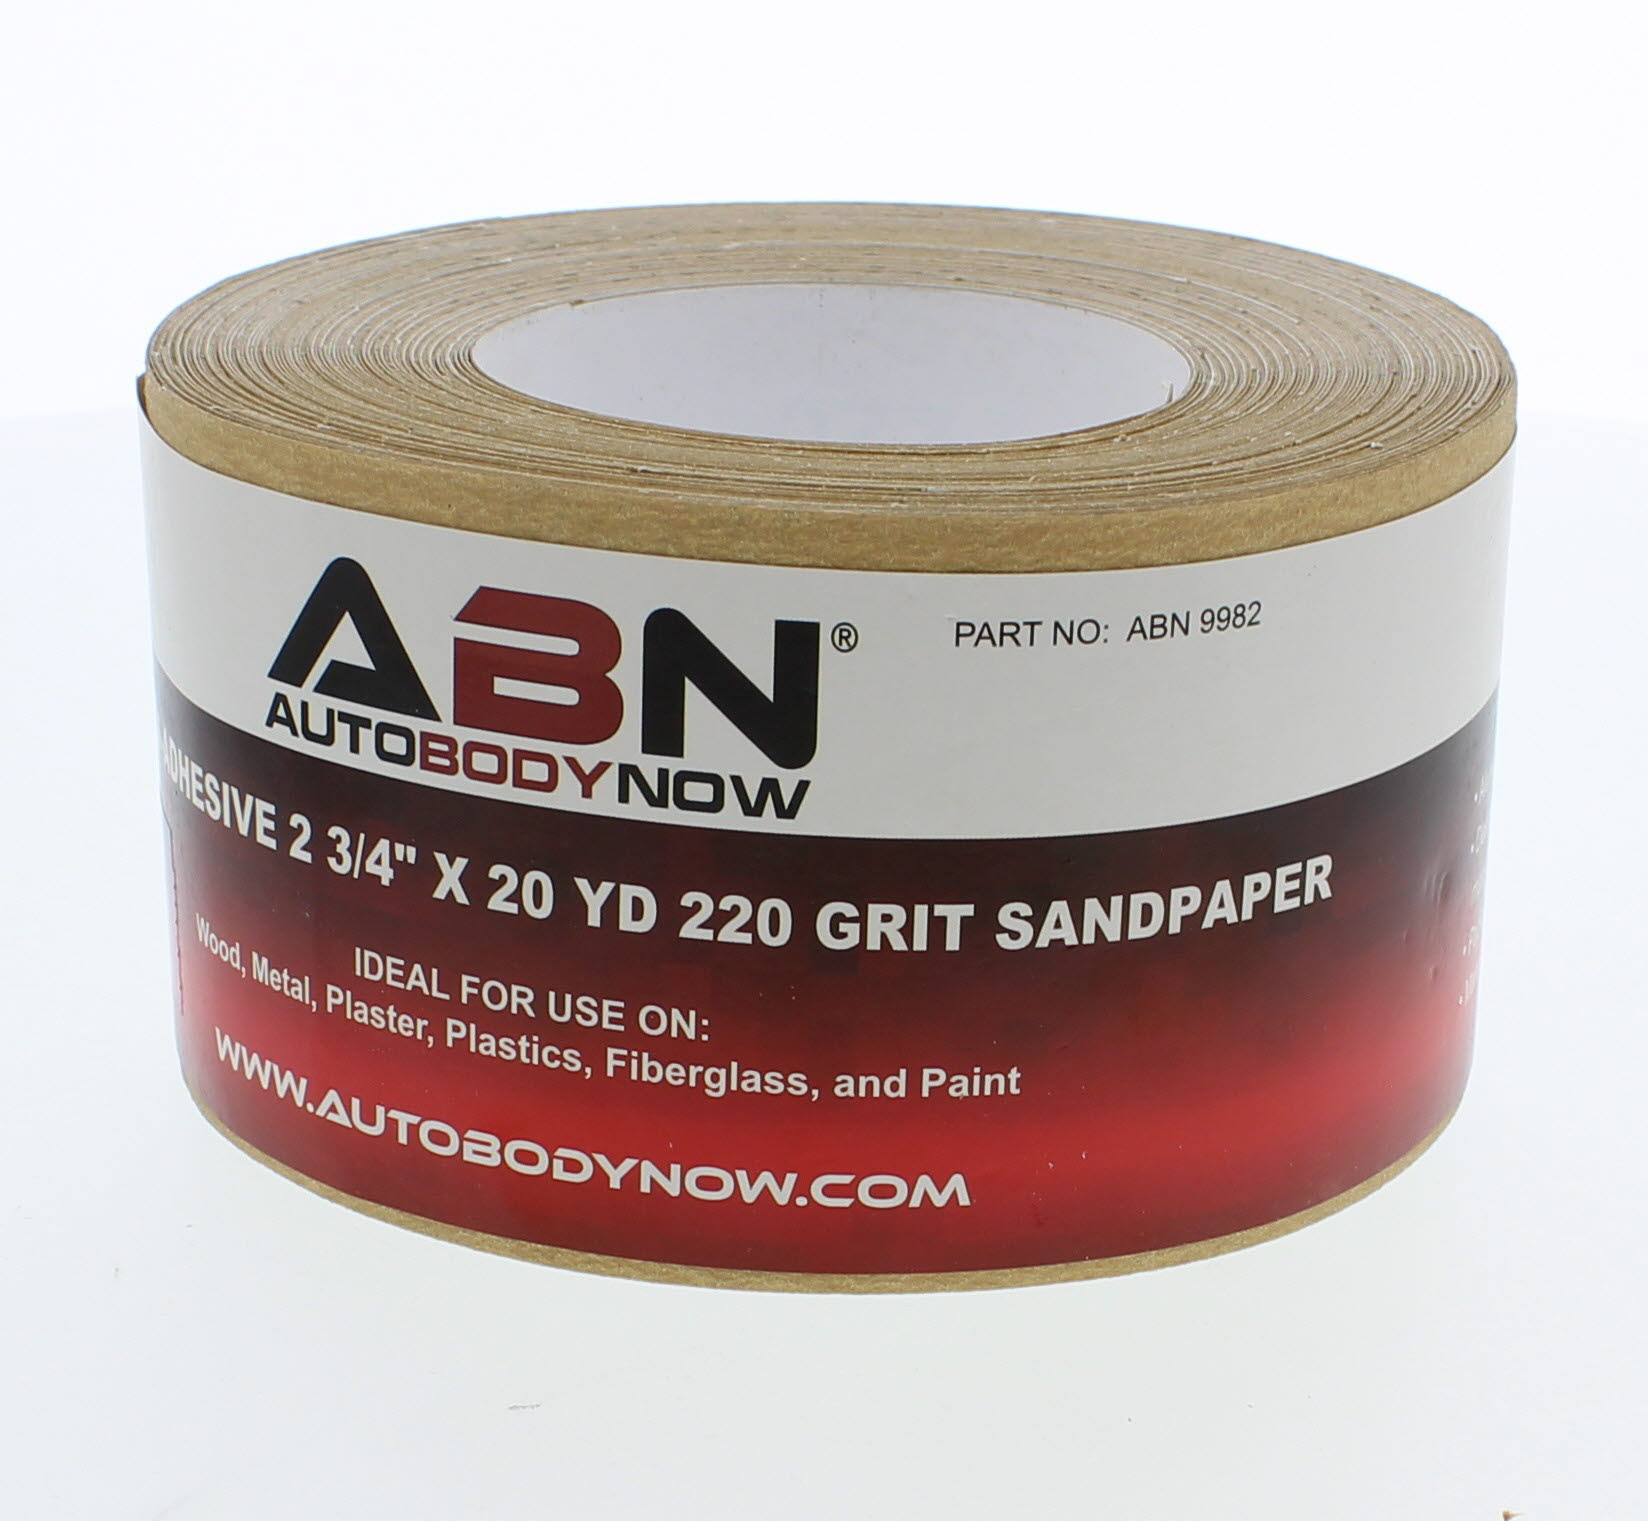 ABN-Adhesive-Sandpaper-Roll-2-3-4-Inch-x-20-Yards-Aluminum-Oxide-PSA thumbnail 21